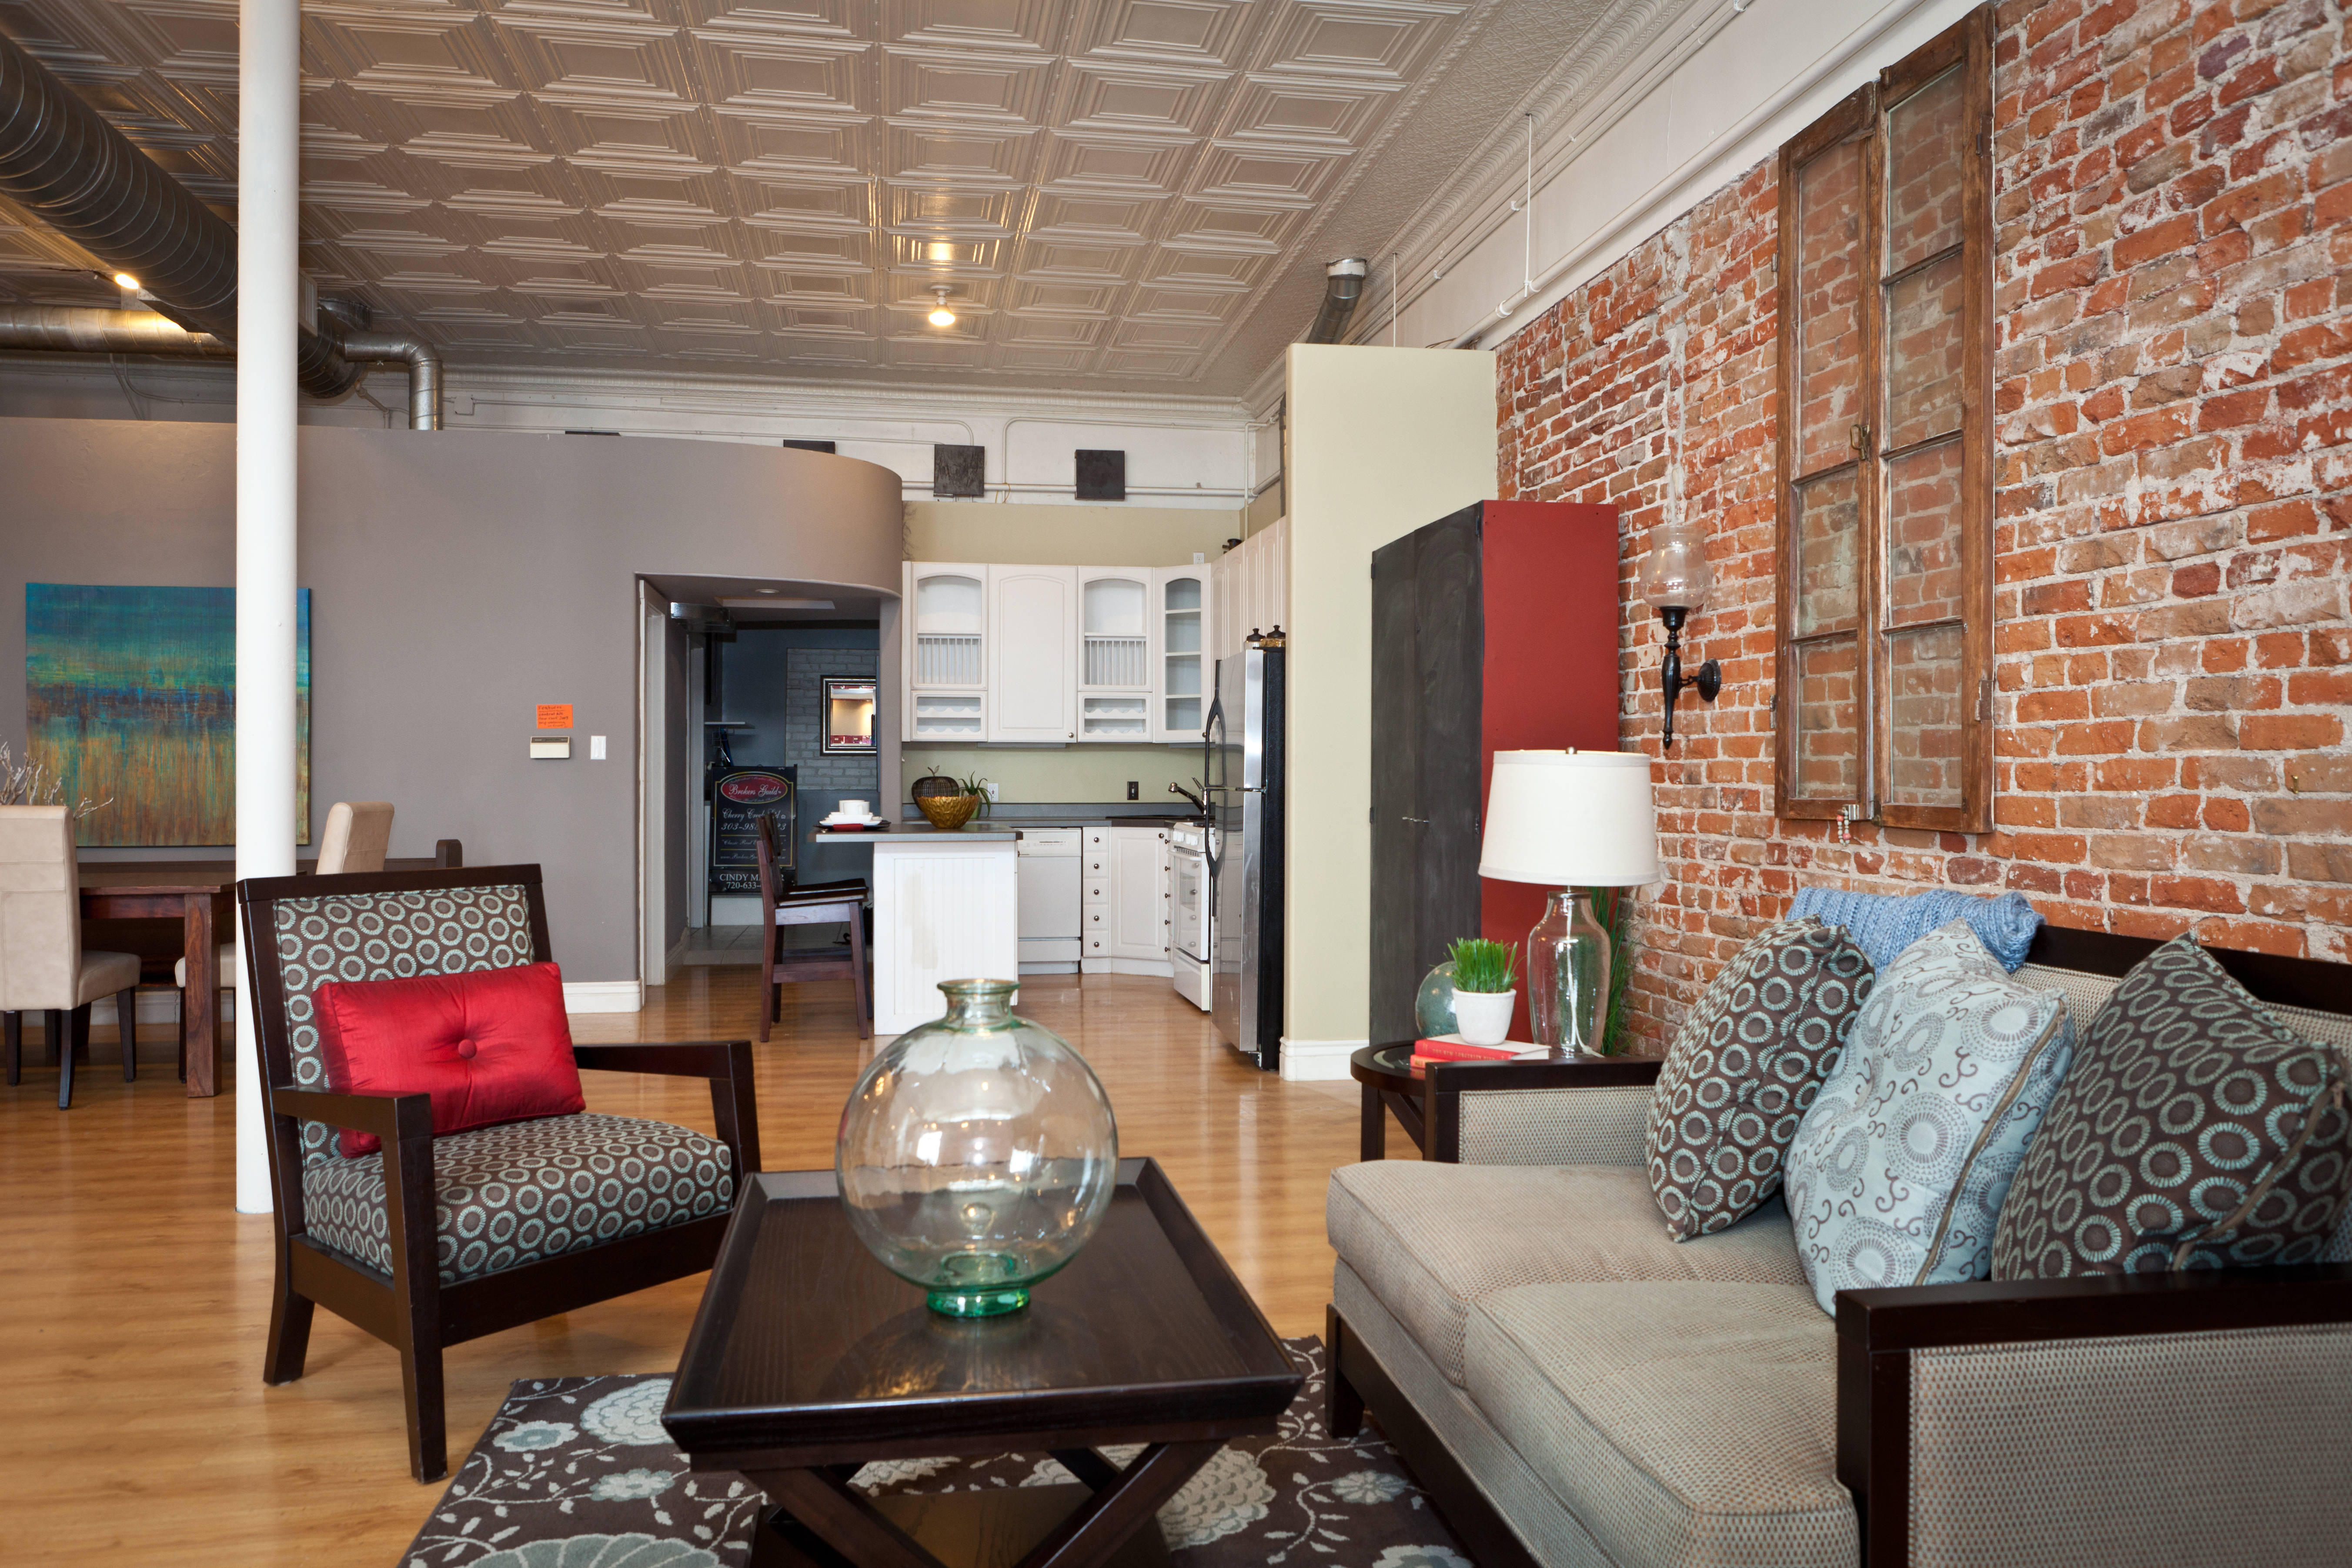 31st Avenue Living Room and Kitchen